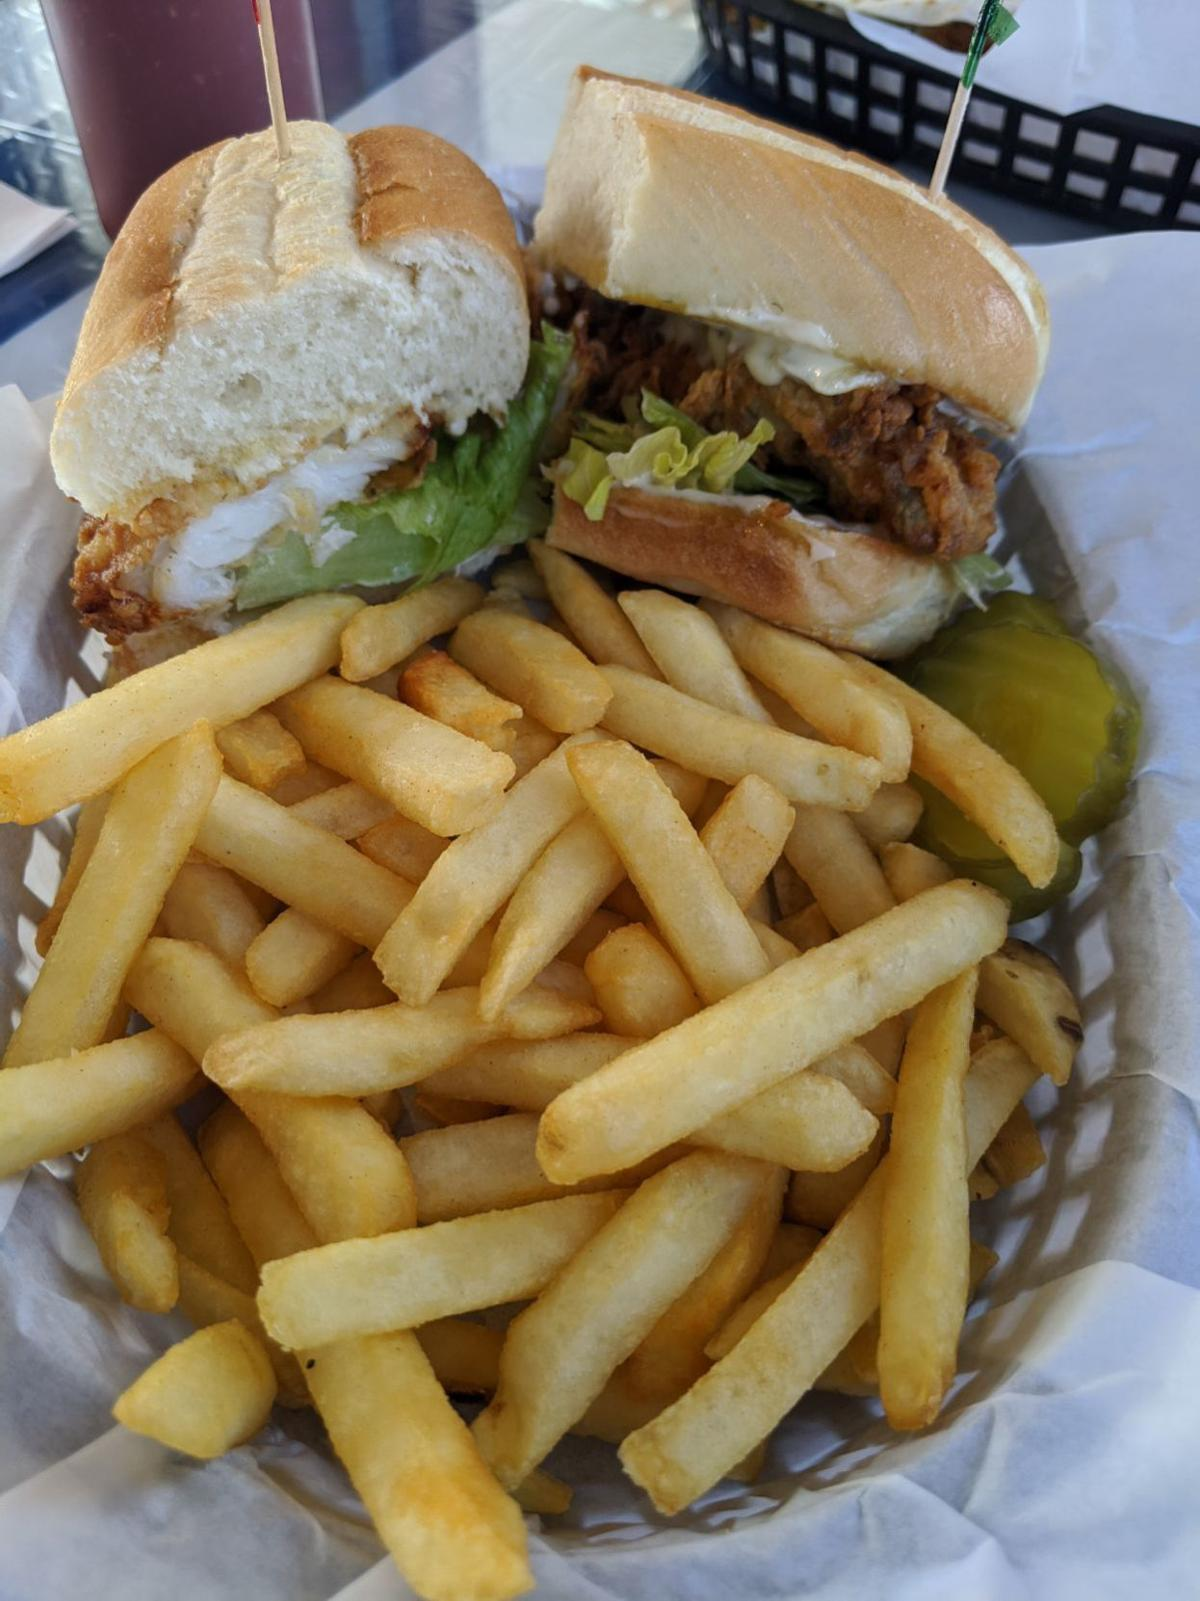 the boat fish sandwich